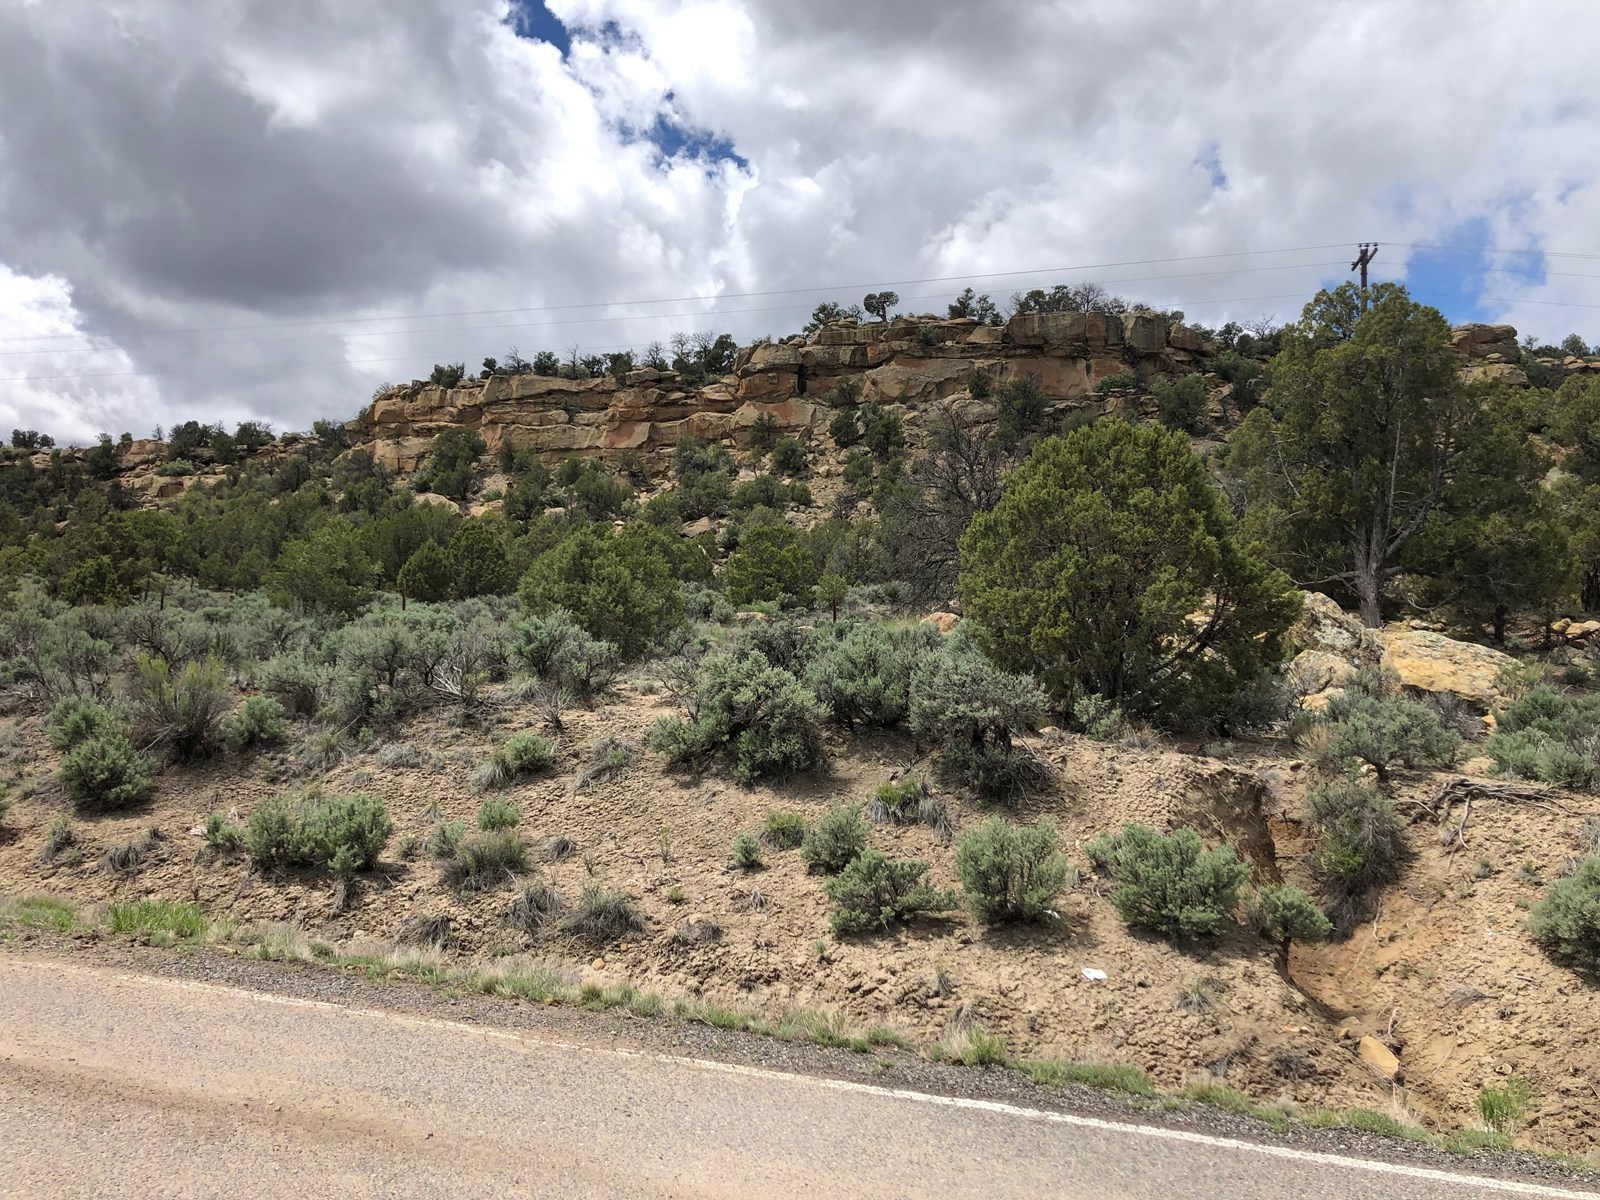 Northern NM Land For Sale near Navajo Lake State Park